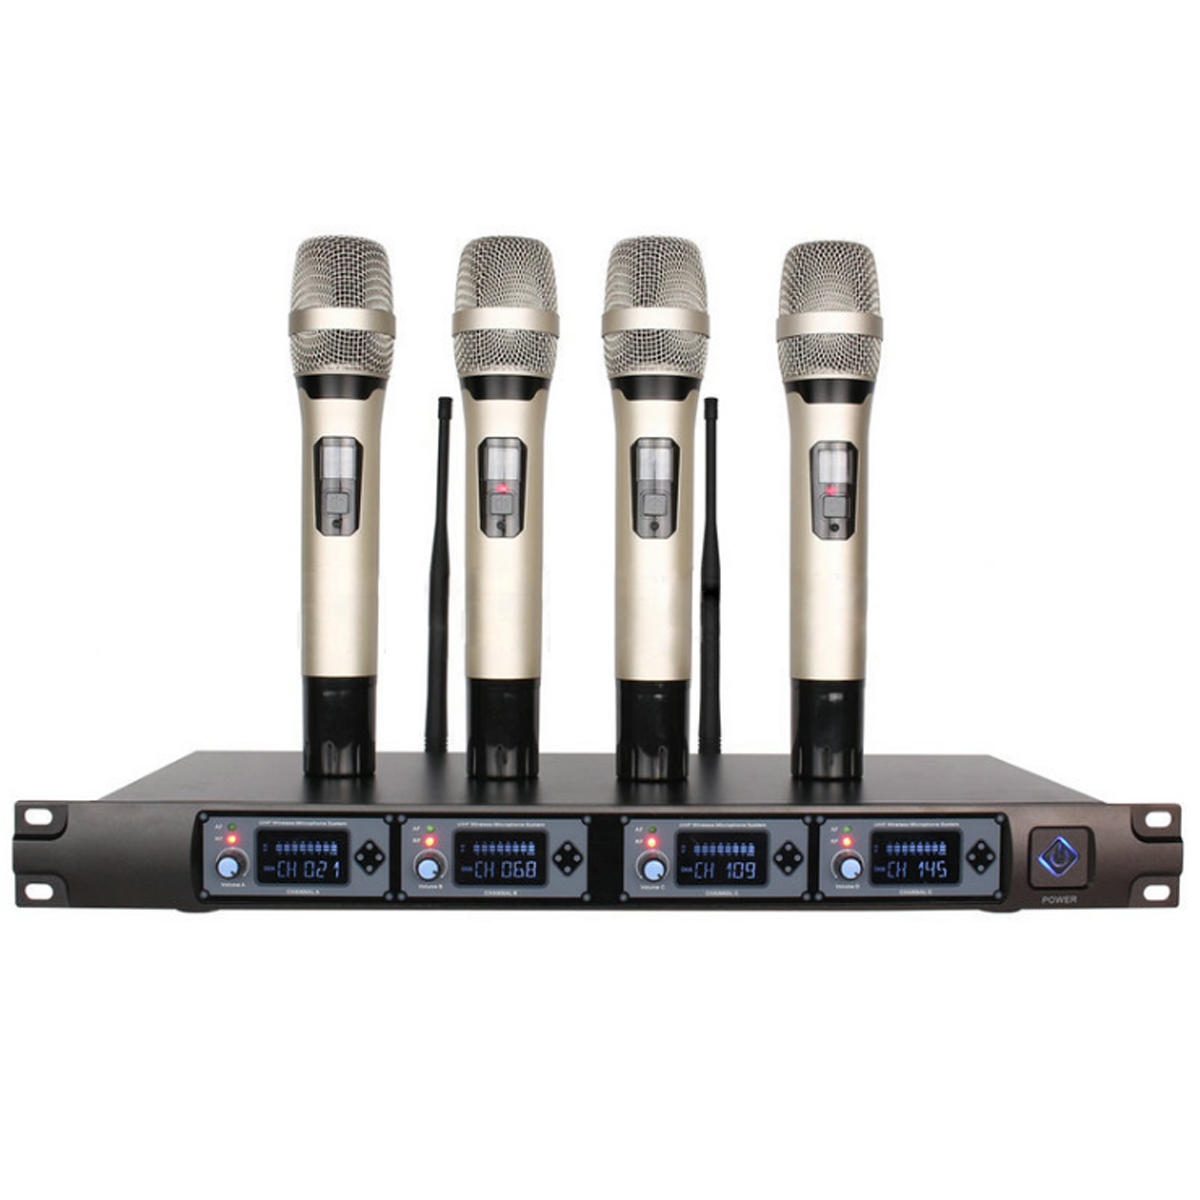 u f4000 professional uhf 4 channel 4 handheld wireless lcd display home karaoke microphone. Black Bedroom Furniture Sets. Home Design Ideas